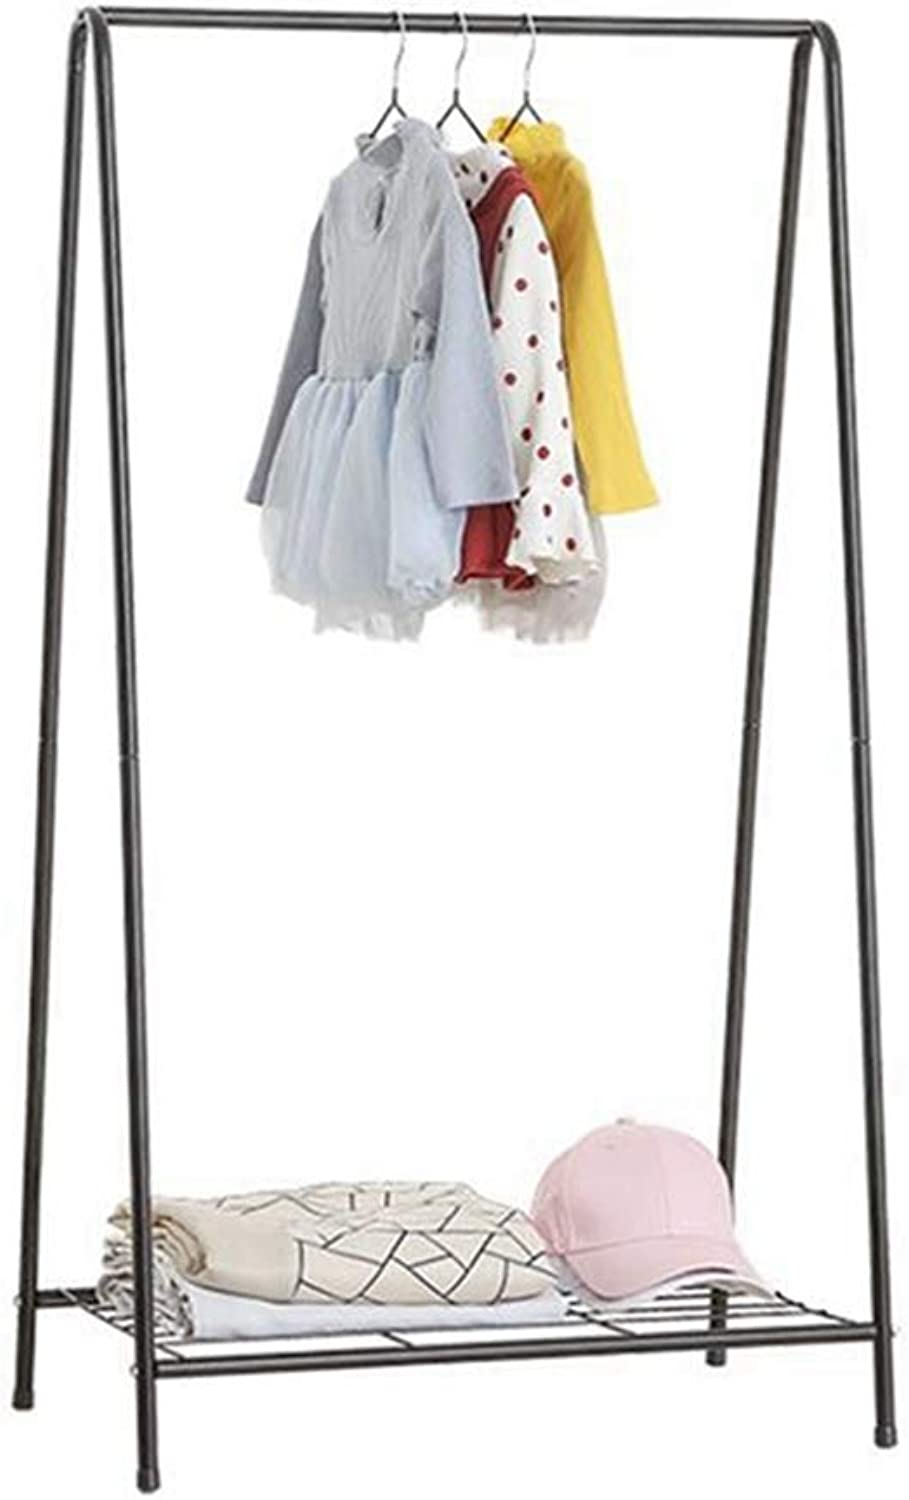 Sxuefang Coat Rack Coat Hat Rack White A-Type Drying Rack Iron Creative Home Floor Hanging Rack Drying Clothes Rack 120x38x66cm